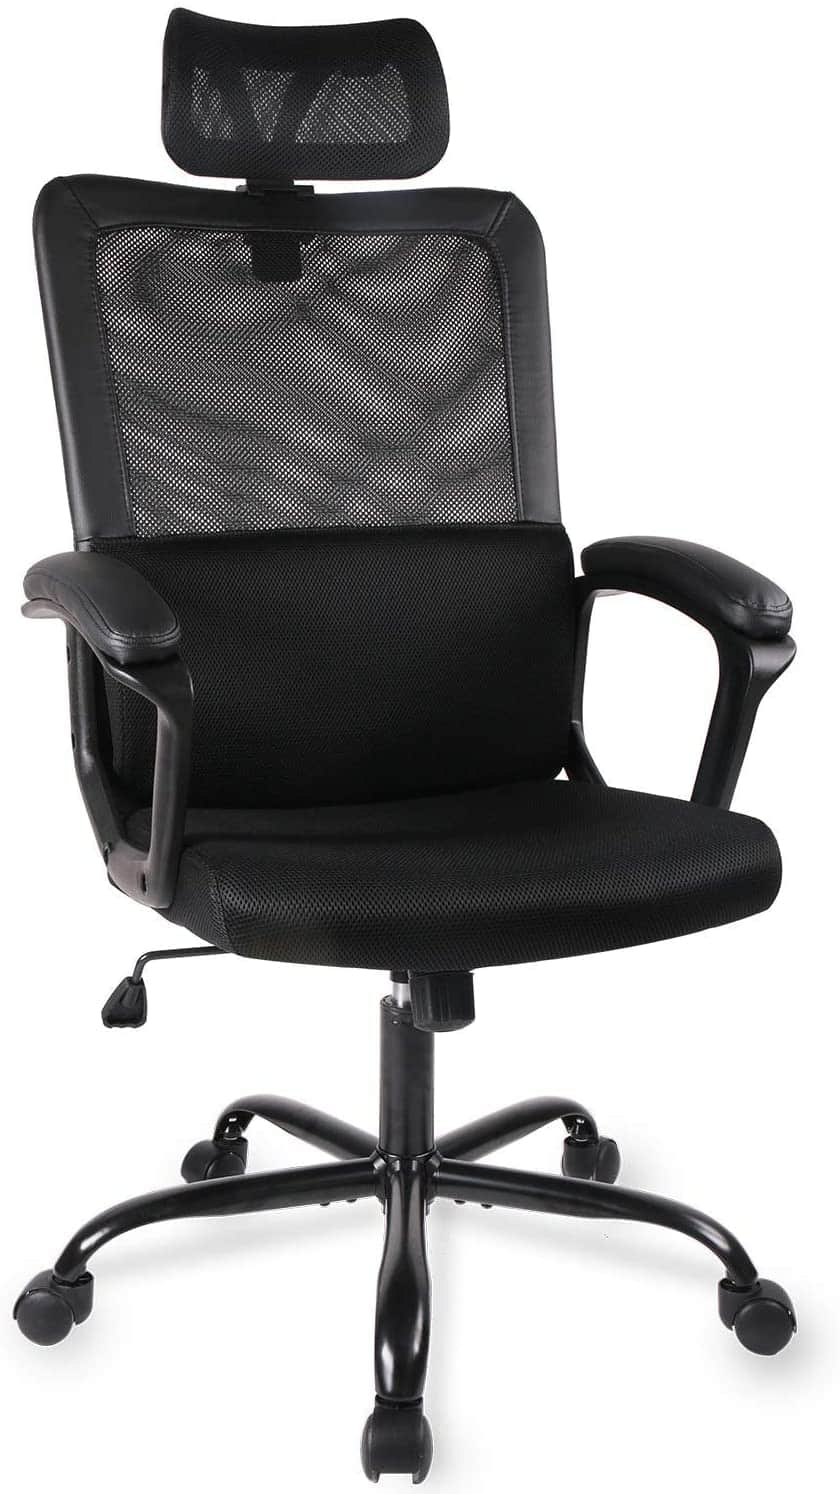 Ergonomic High Back Office Chair from Smugdesk